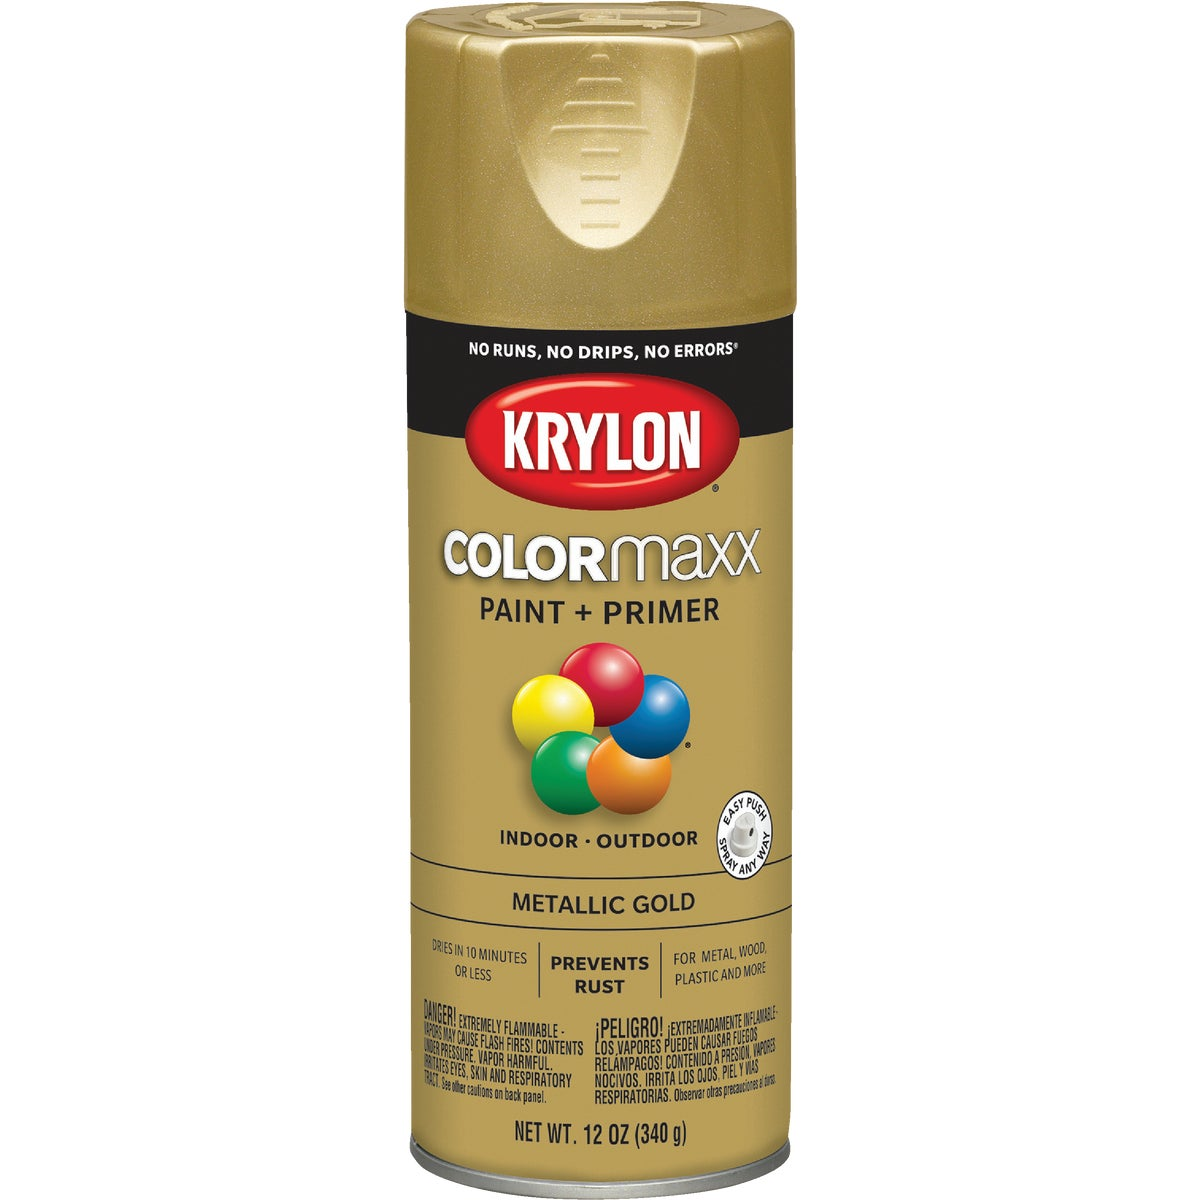 GLOSS GOLD SPRAY PAINT - 51510 by Krylon/consumer Div